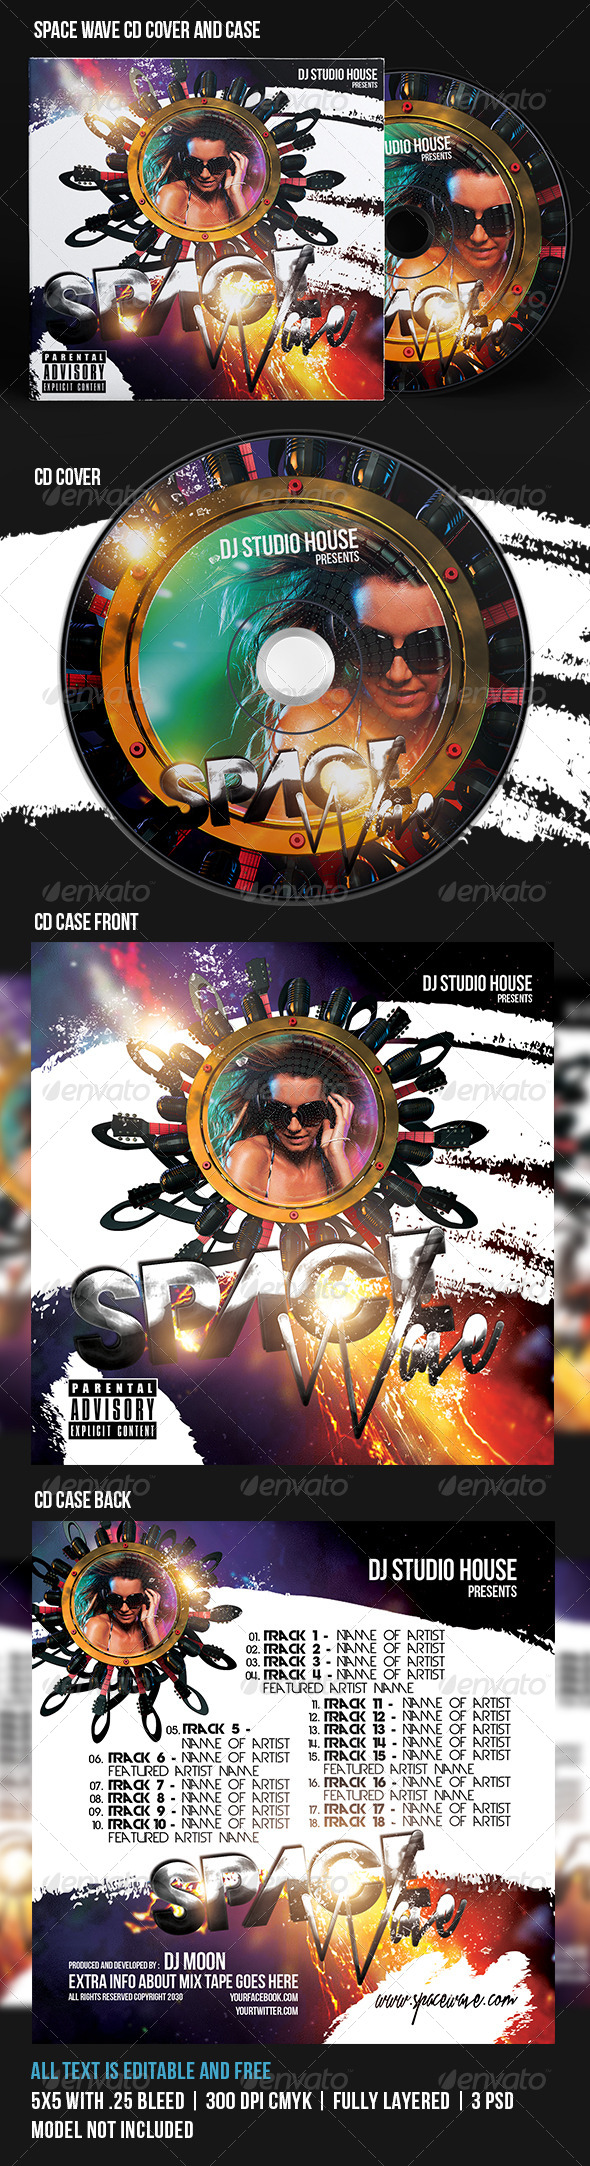 GraphicRiver Space Wave CD Cover 7688396